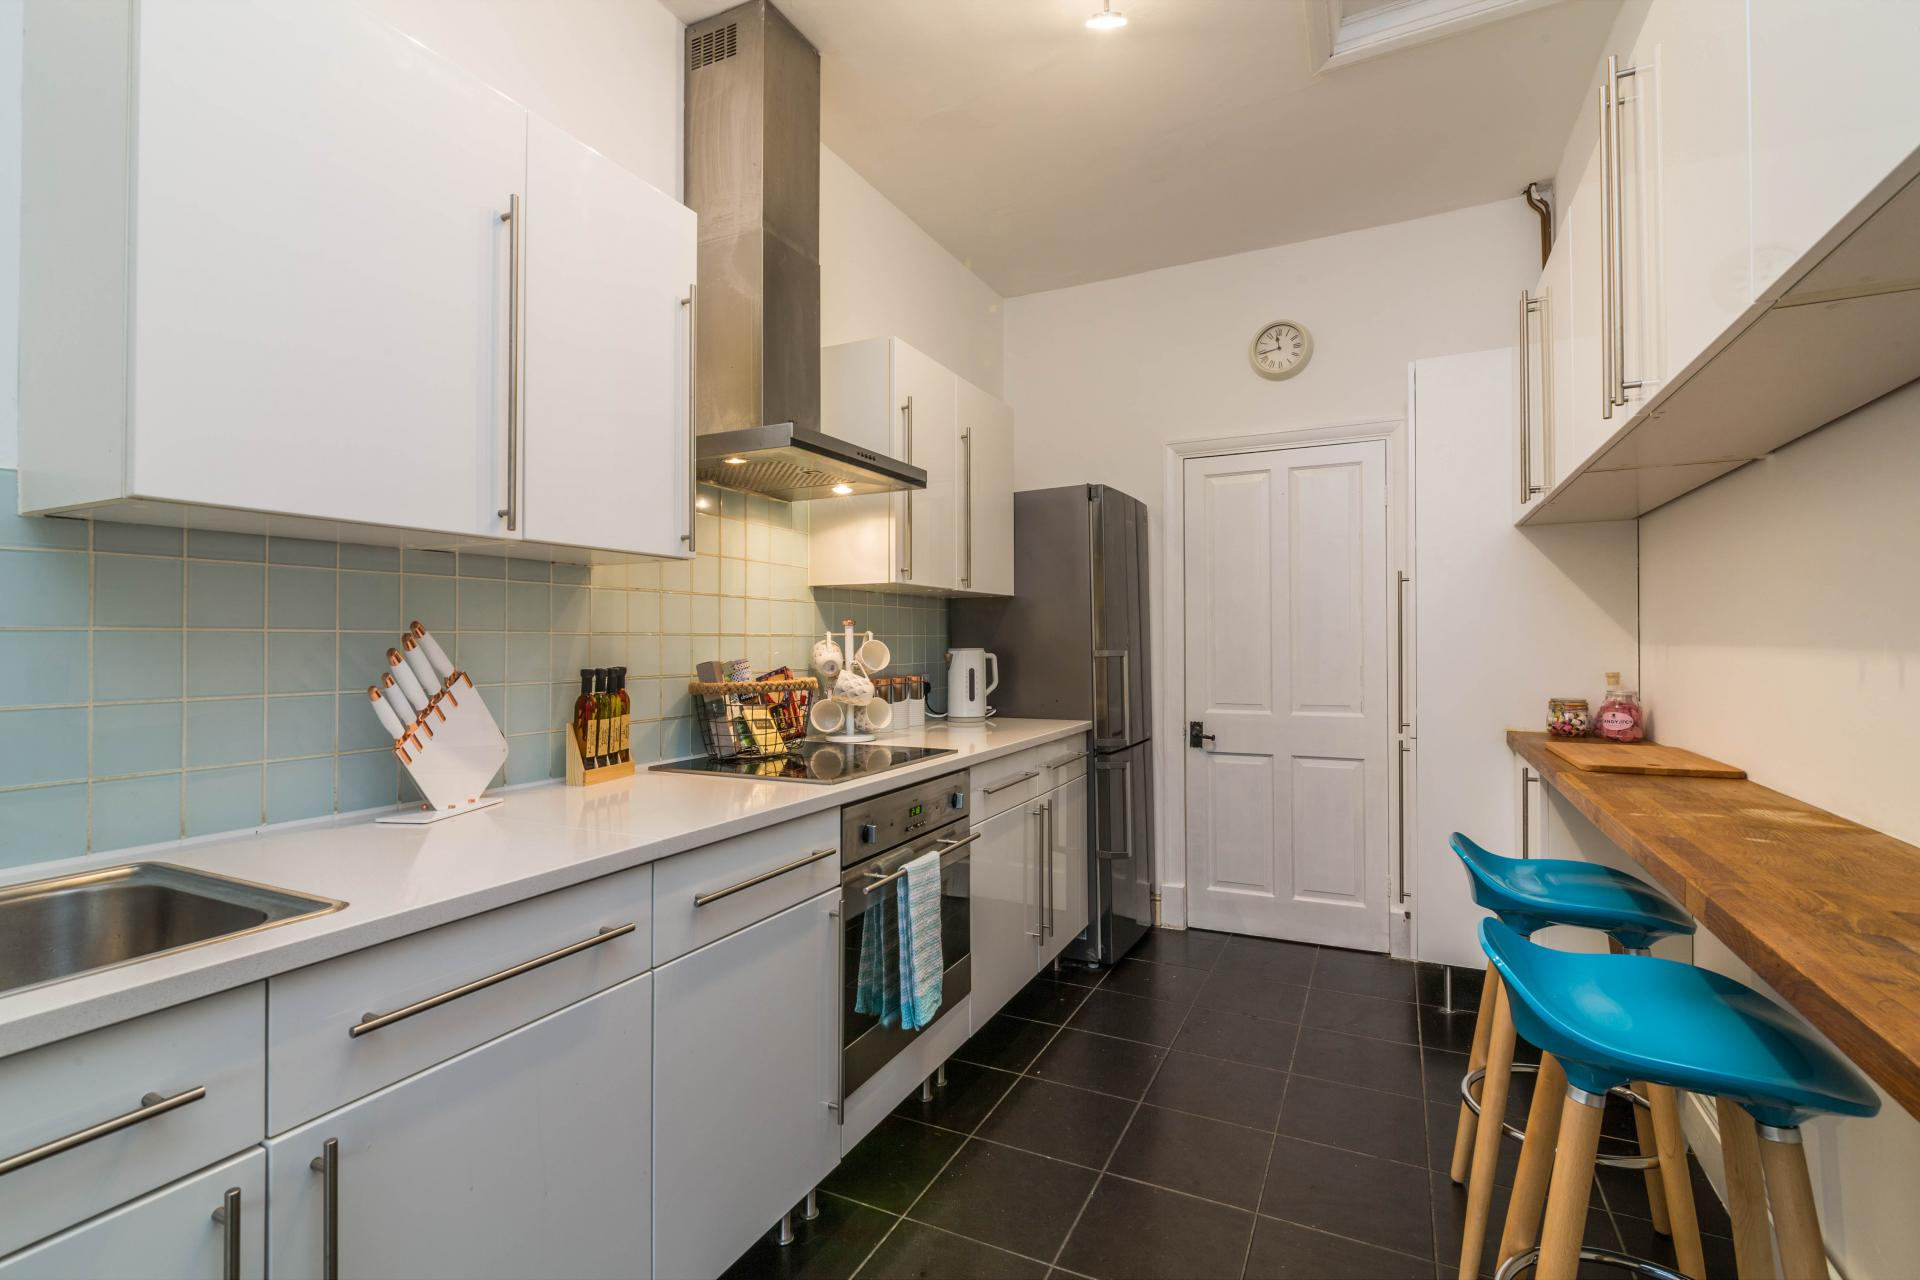 Kitchen at Mapperley Coach House, Mapperley Park, Nottingham - Citybase Apartments